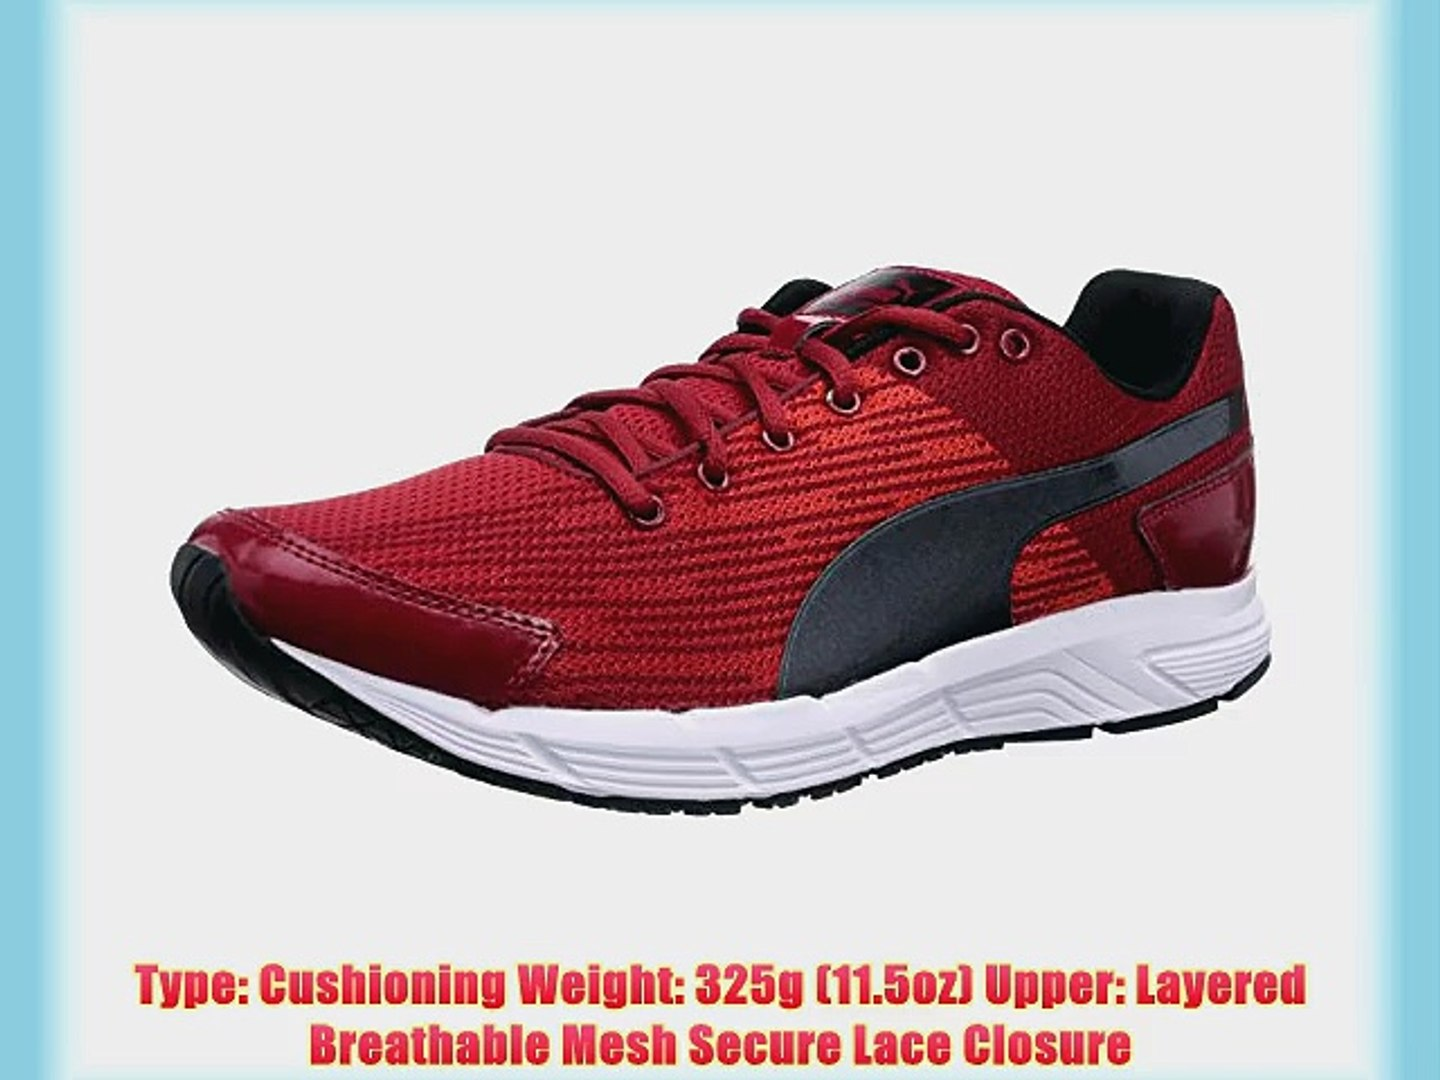 Puma Sequence Men's Running Shoes Red/Black 10 UK